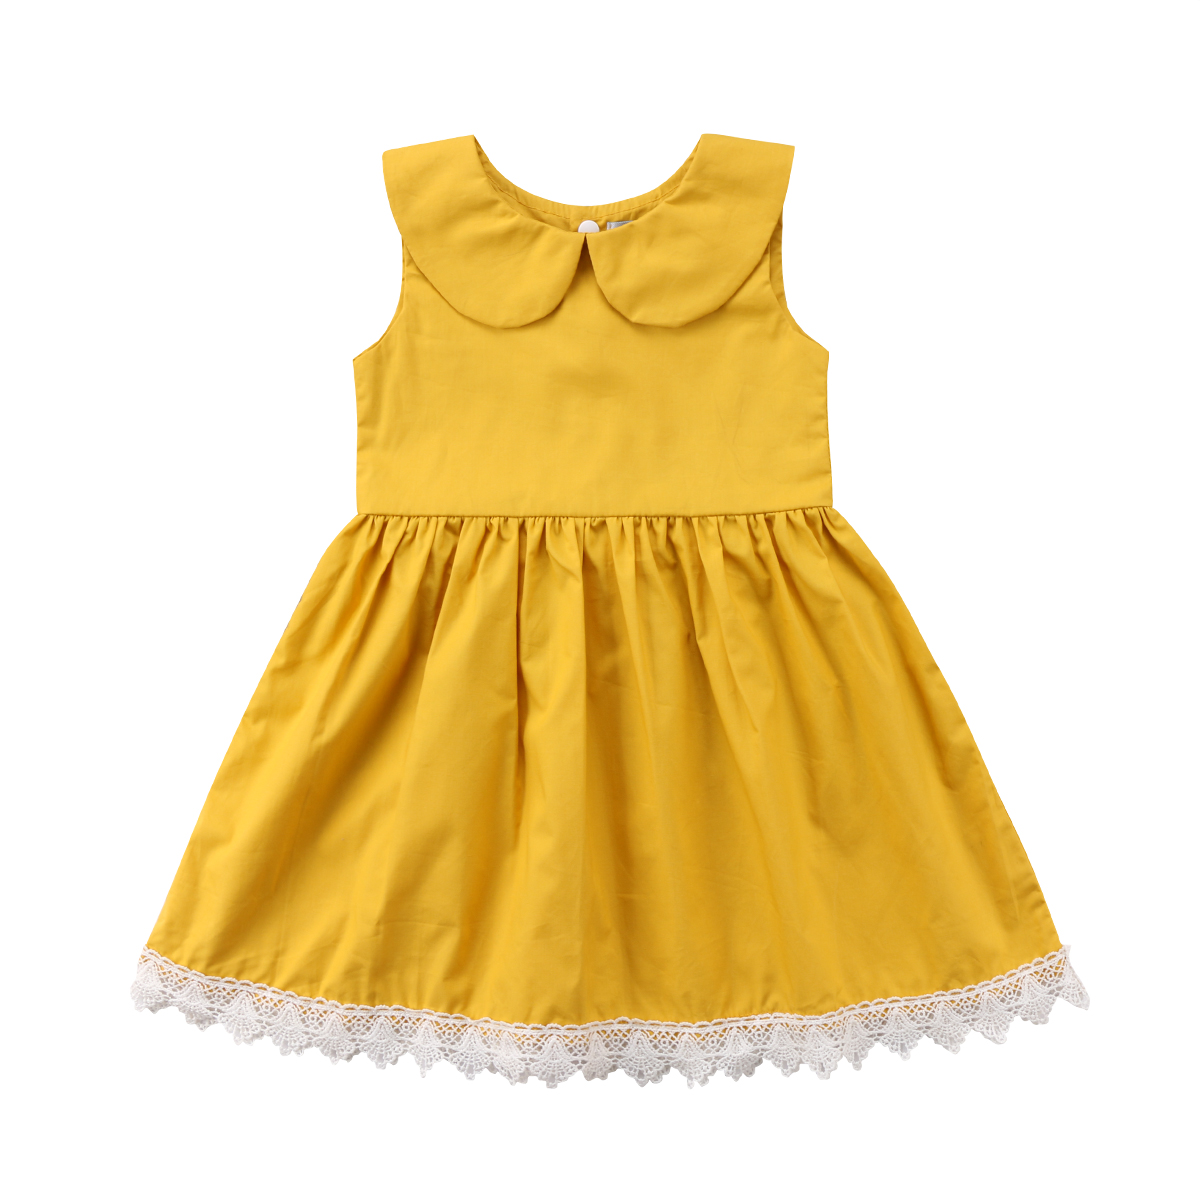 Toddler Girl Princess Dress Summer Sleeveless Yellow Cute Girls Clothing Round Neck Kids Baby Party Pageant Solid Lace Flower cute round neck sleeveless red bowknot design girl s princess dress